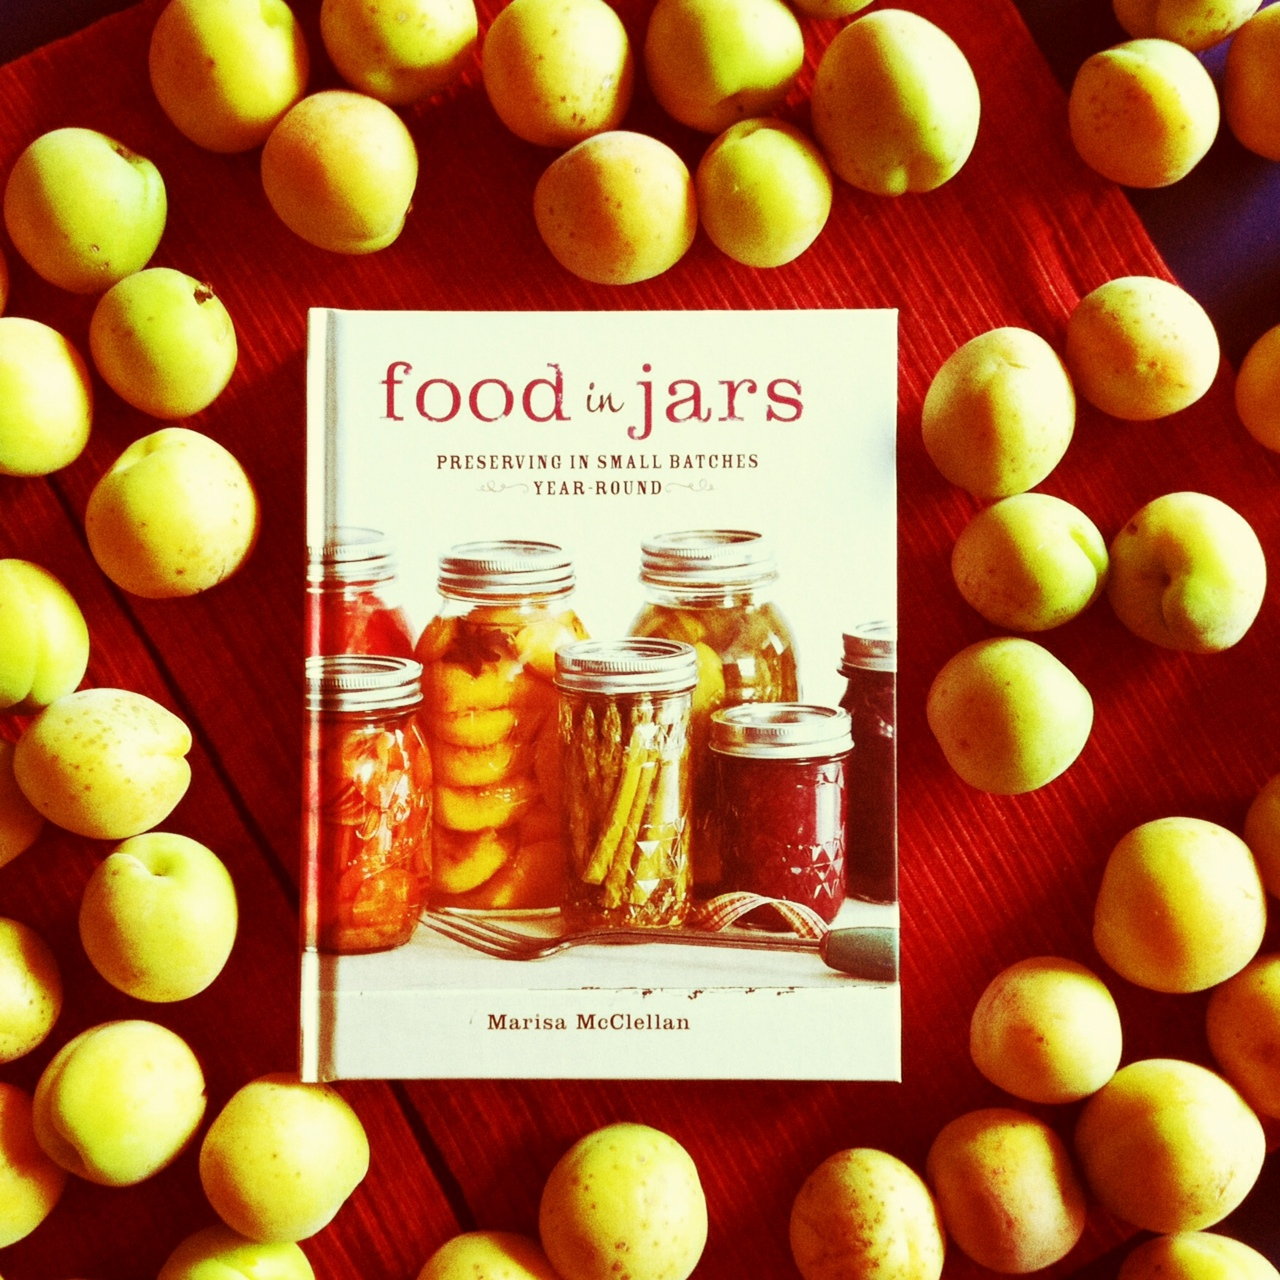 food_in_jars_cookbook